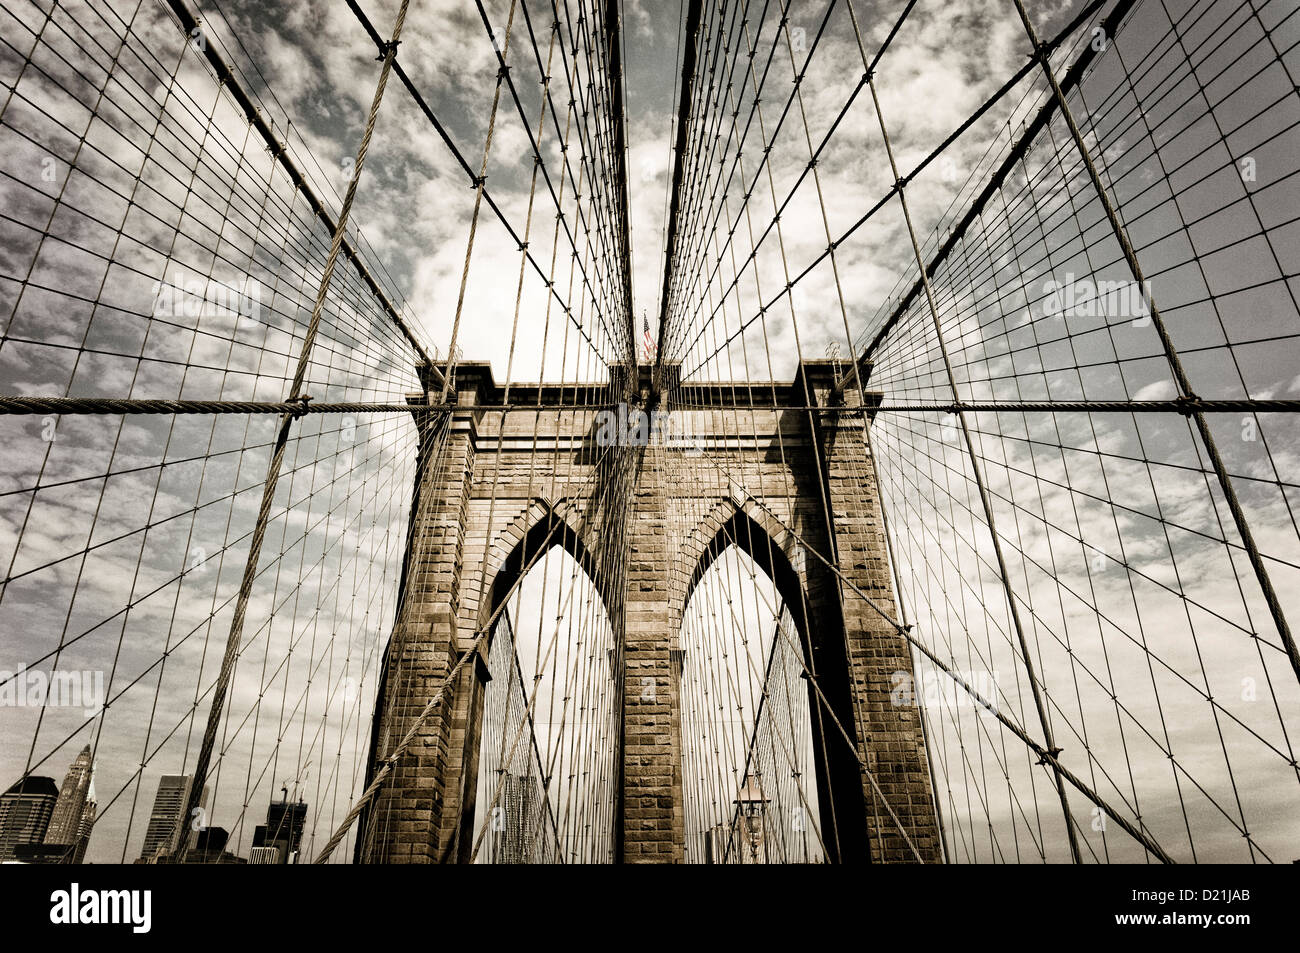 Brooklyn bridge with the sky in Sepia, New York City, New York, USA - Stock Image